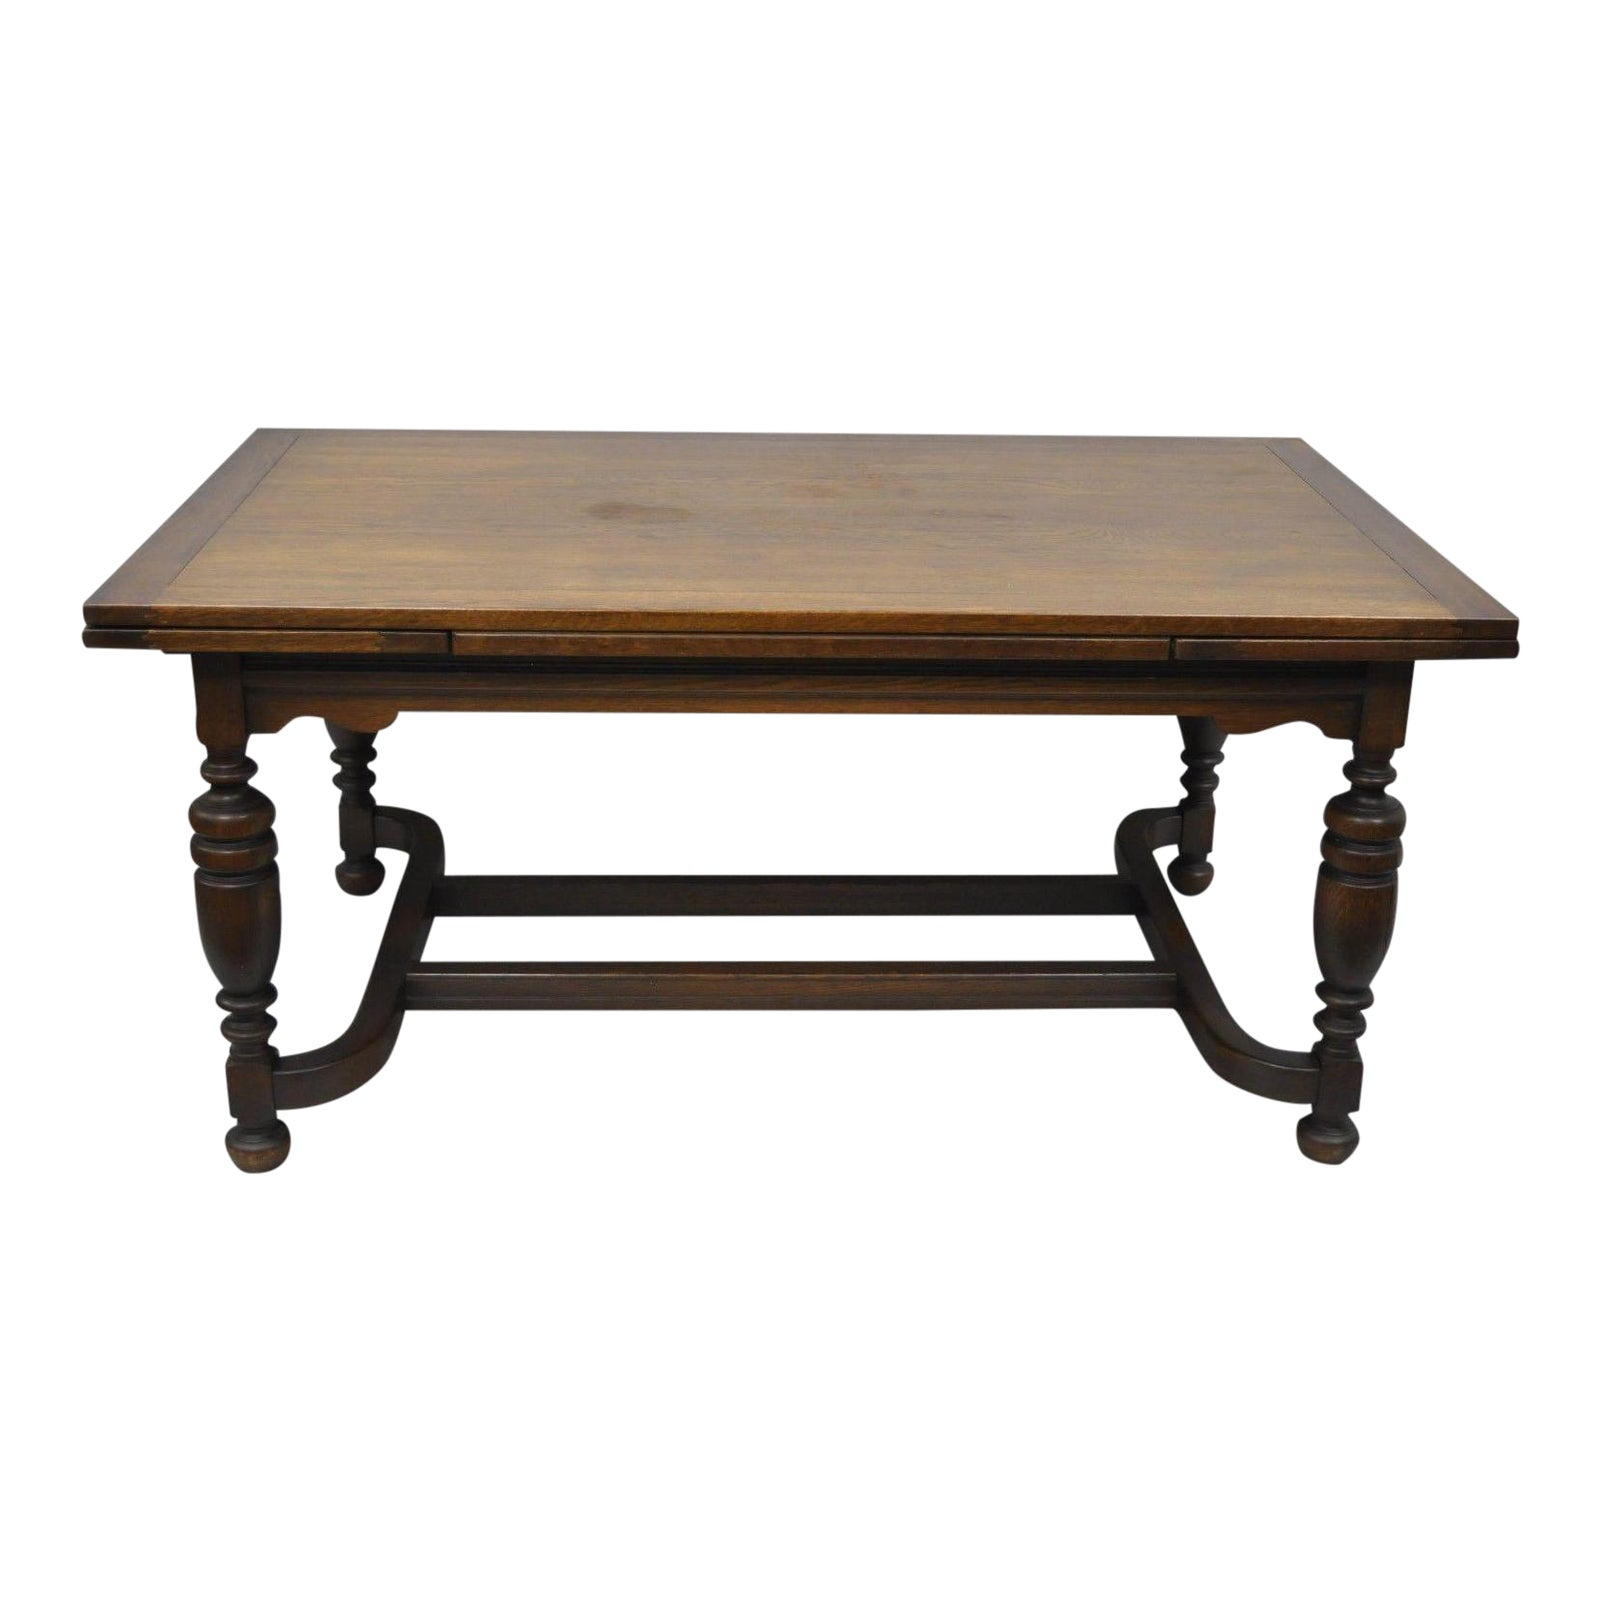 Antique Jacobean Style Oak Wood Extension Leaf Refectory Dining Room